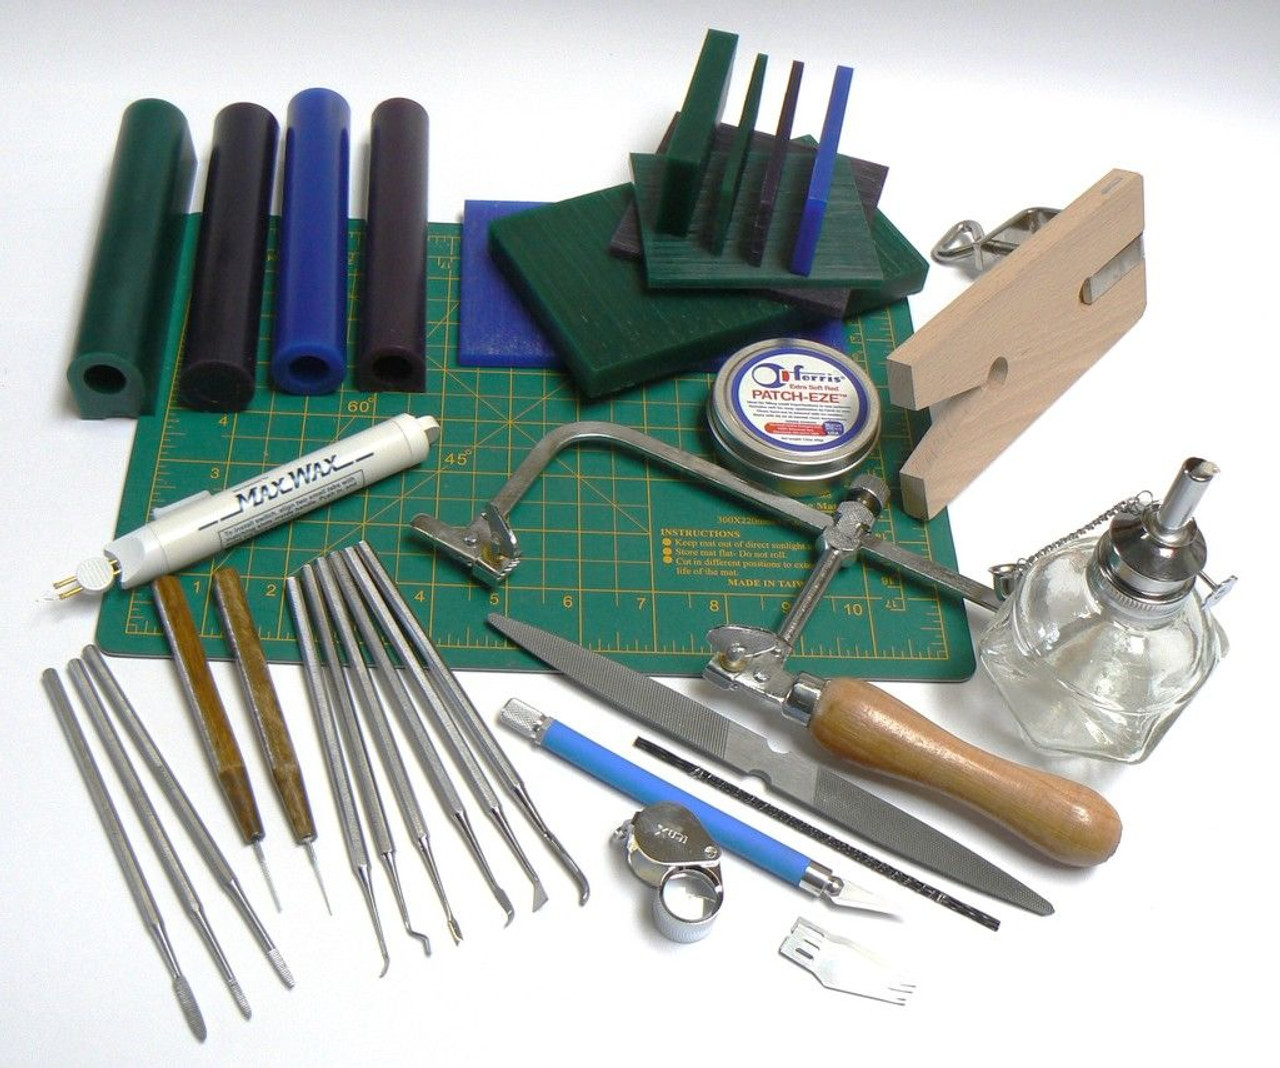 Wax Working Model Making Carving Jewelry Wax Design Work Kit Waxes & Tools